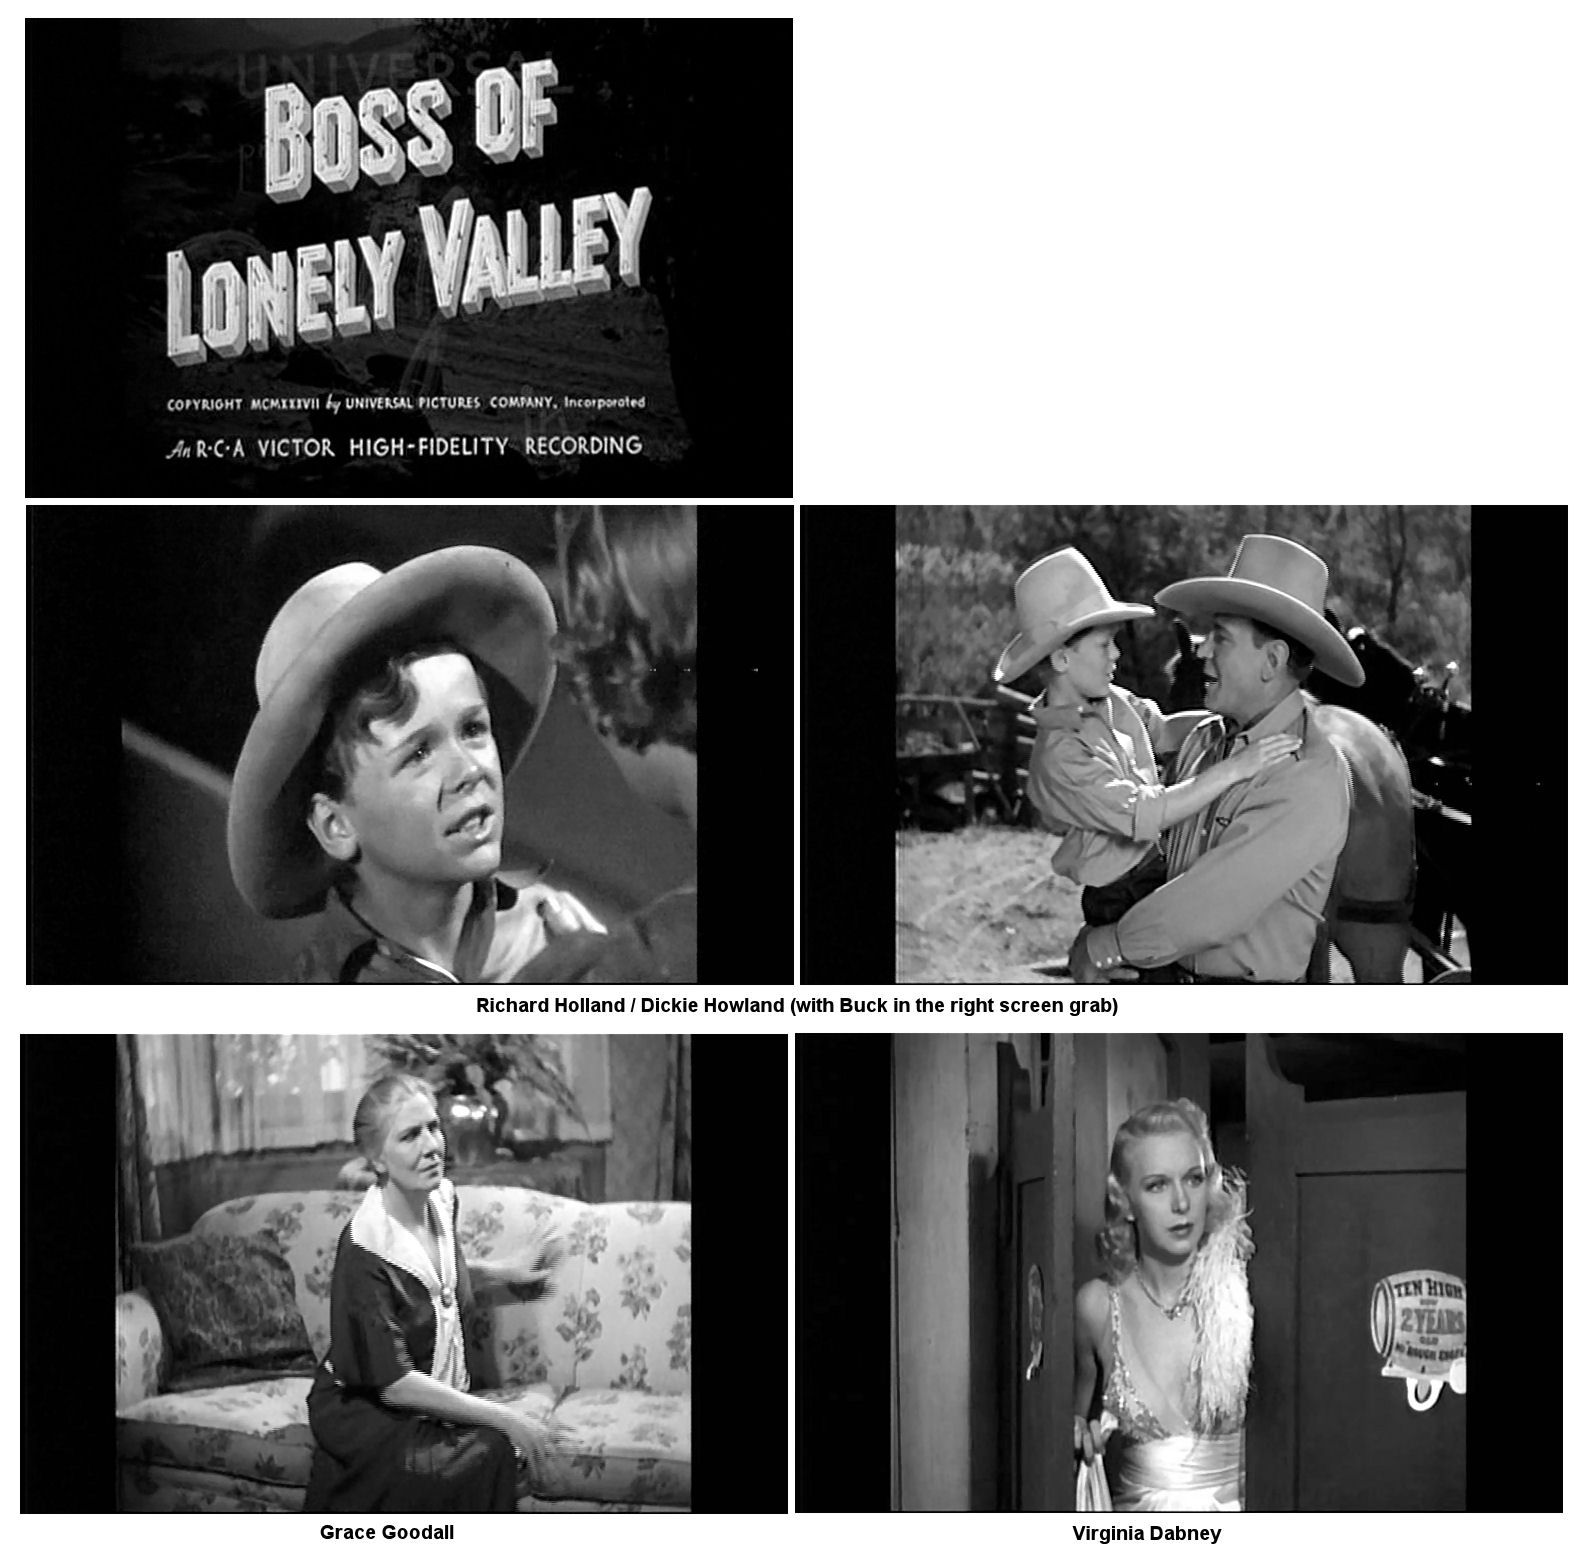 Virginia Dabney, Grace Goodall, Richard Holland, and Buck Jones in Boss of Lonely Valley (1937)